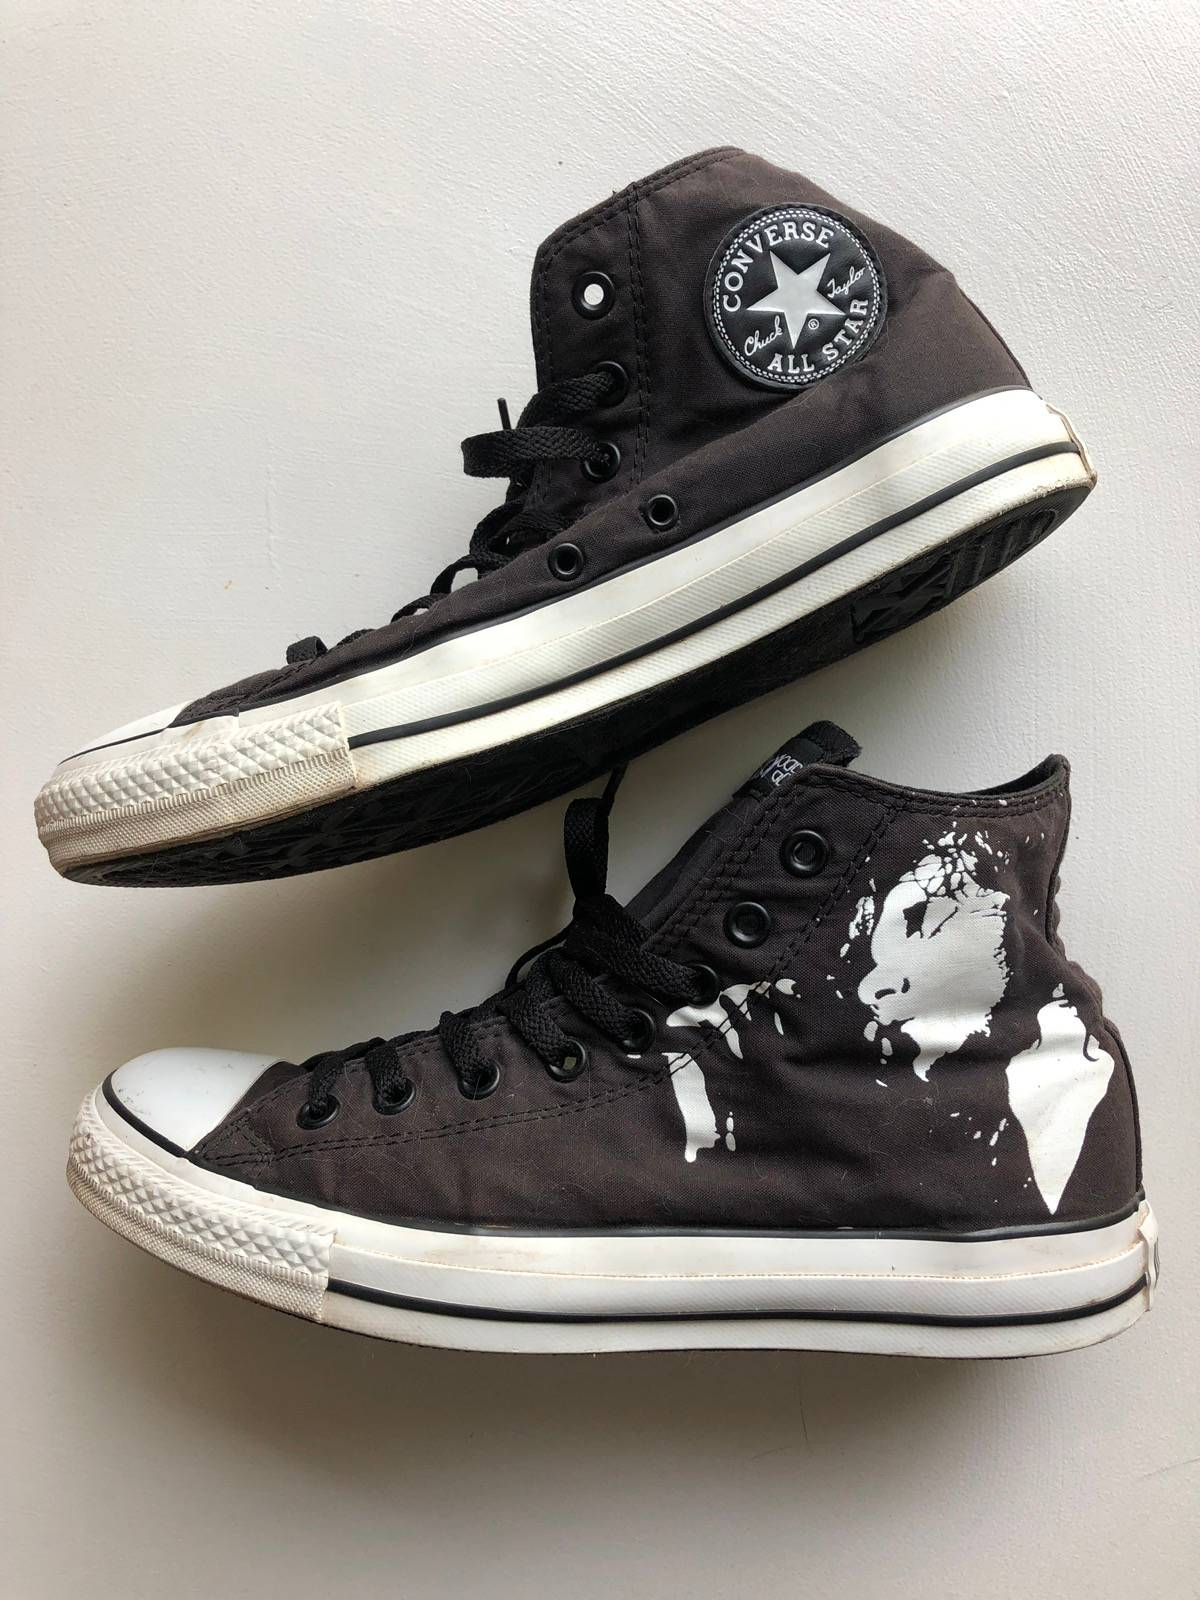 Vintage Converse x the doors limited edition chuck Taylor sneakers